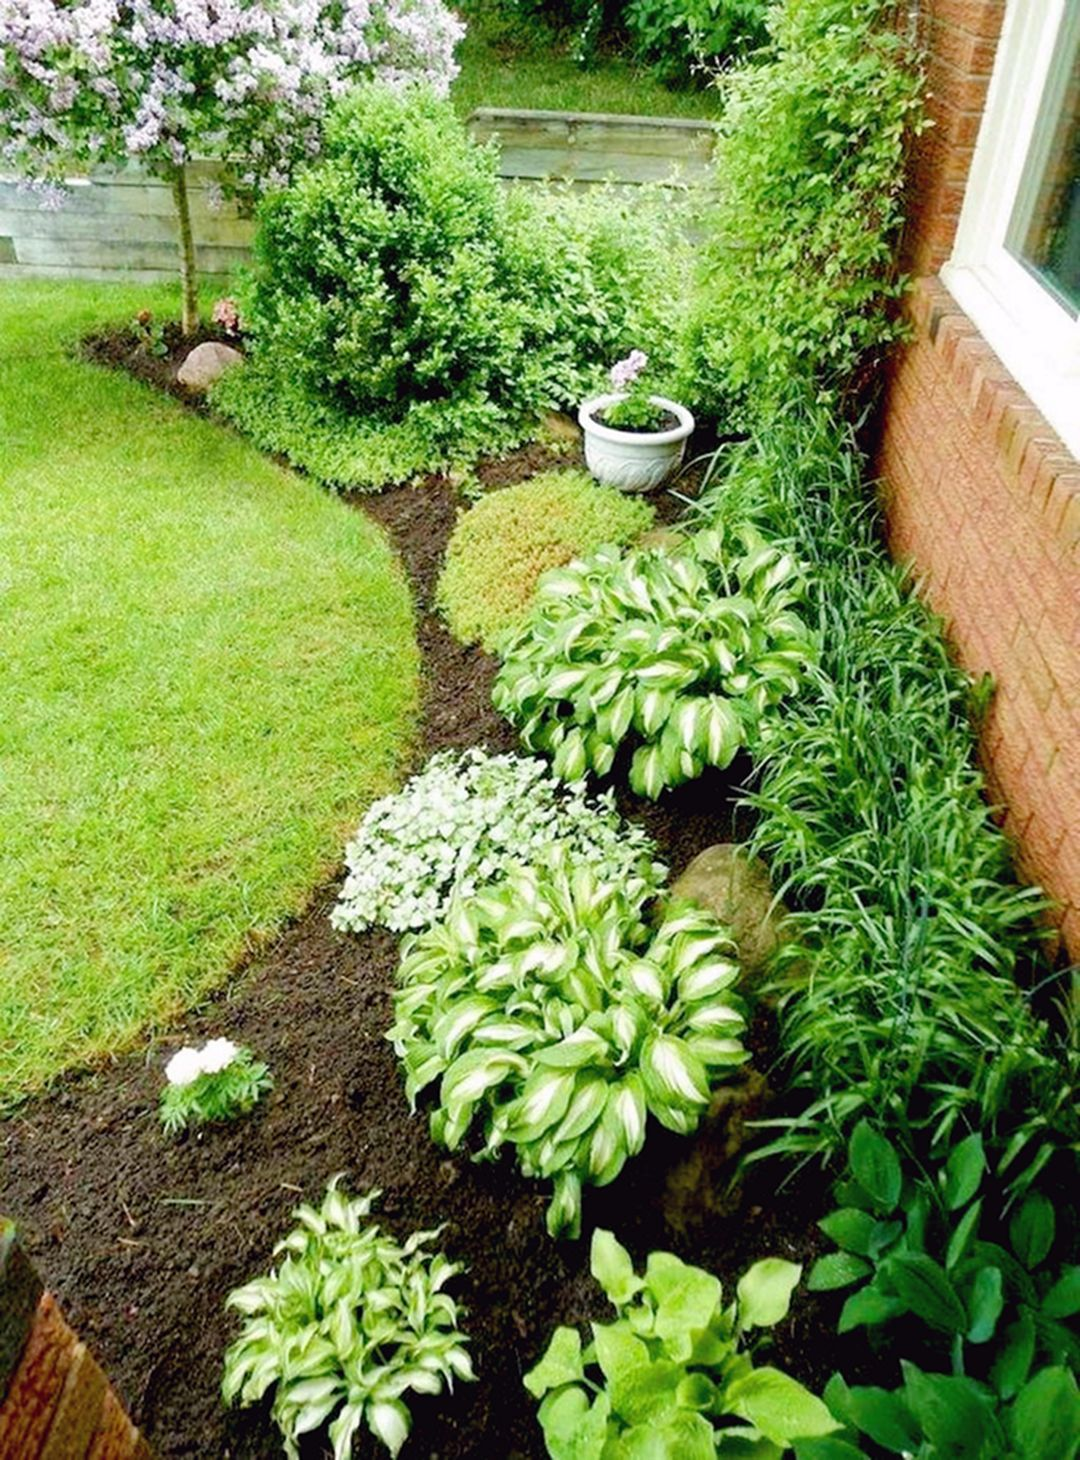 Top 9 Amazing Side Home Yard Garden Ideas With Low ...